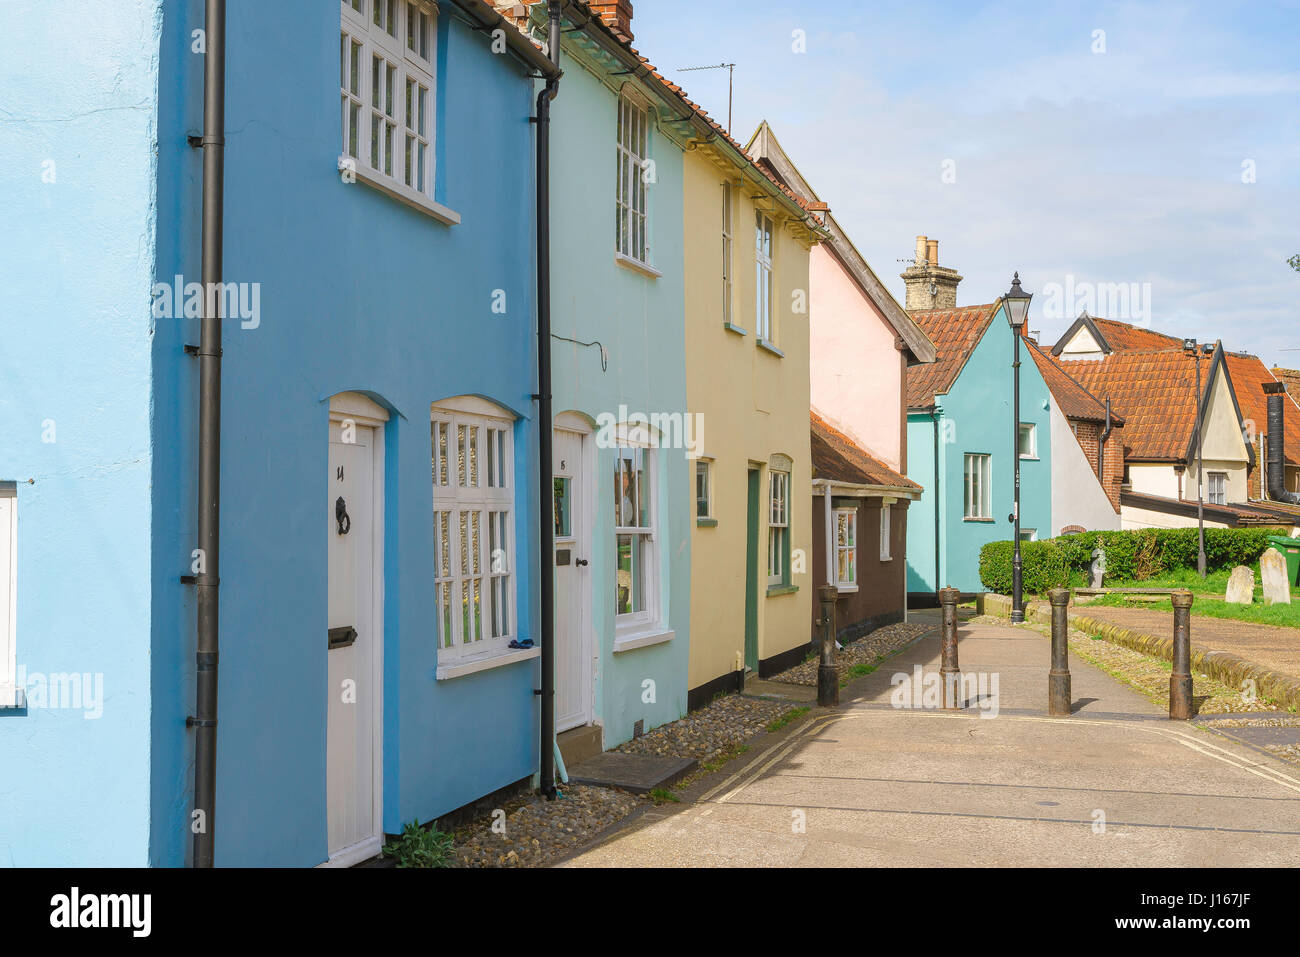 Halesworth Suffolk, colourful cottages in the centre of the rural Suffolk town of Halesworth, England UK - Stock Image